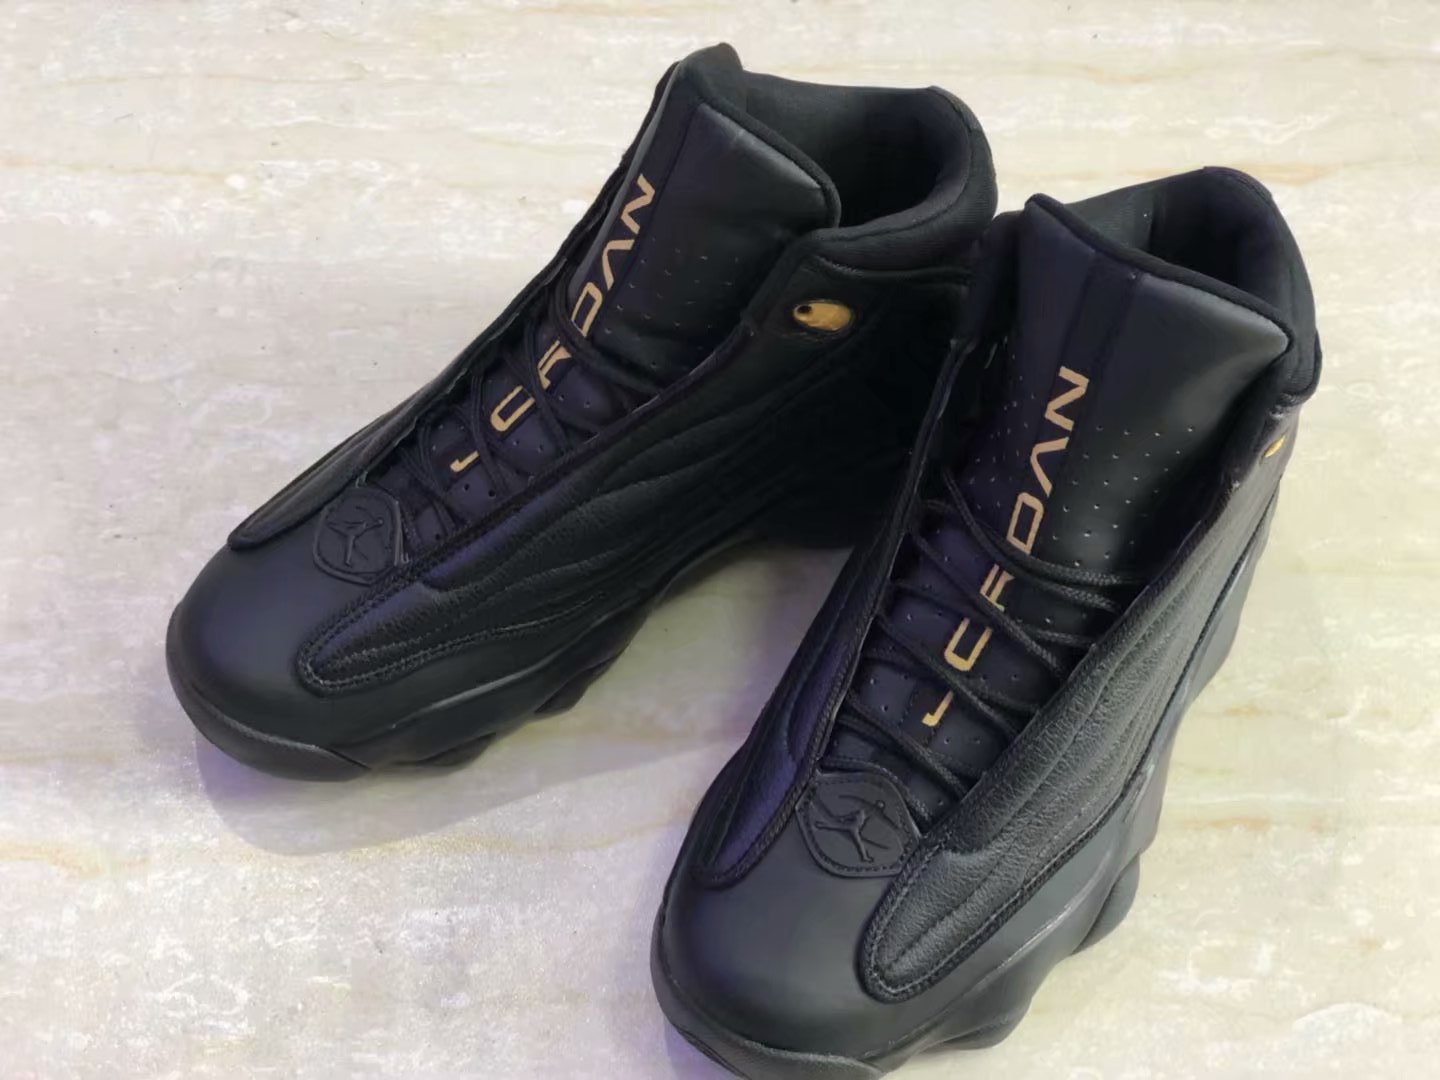 New Air Jordan 13.5 All Black Shoes